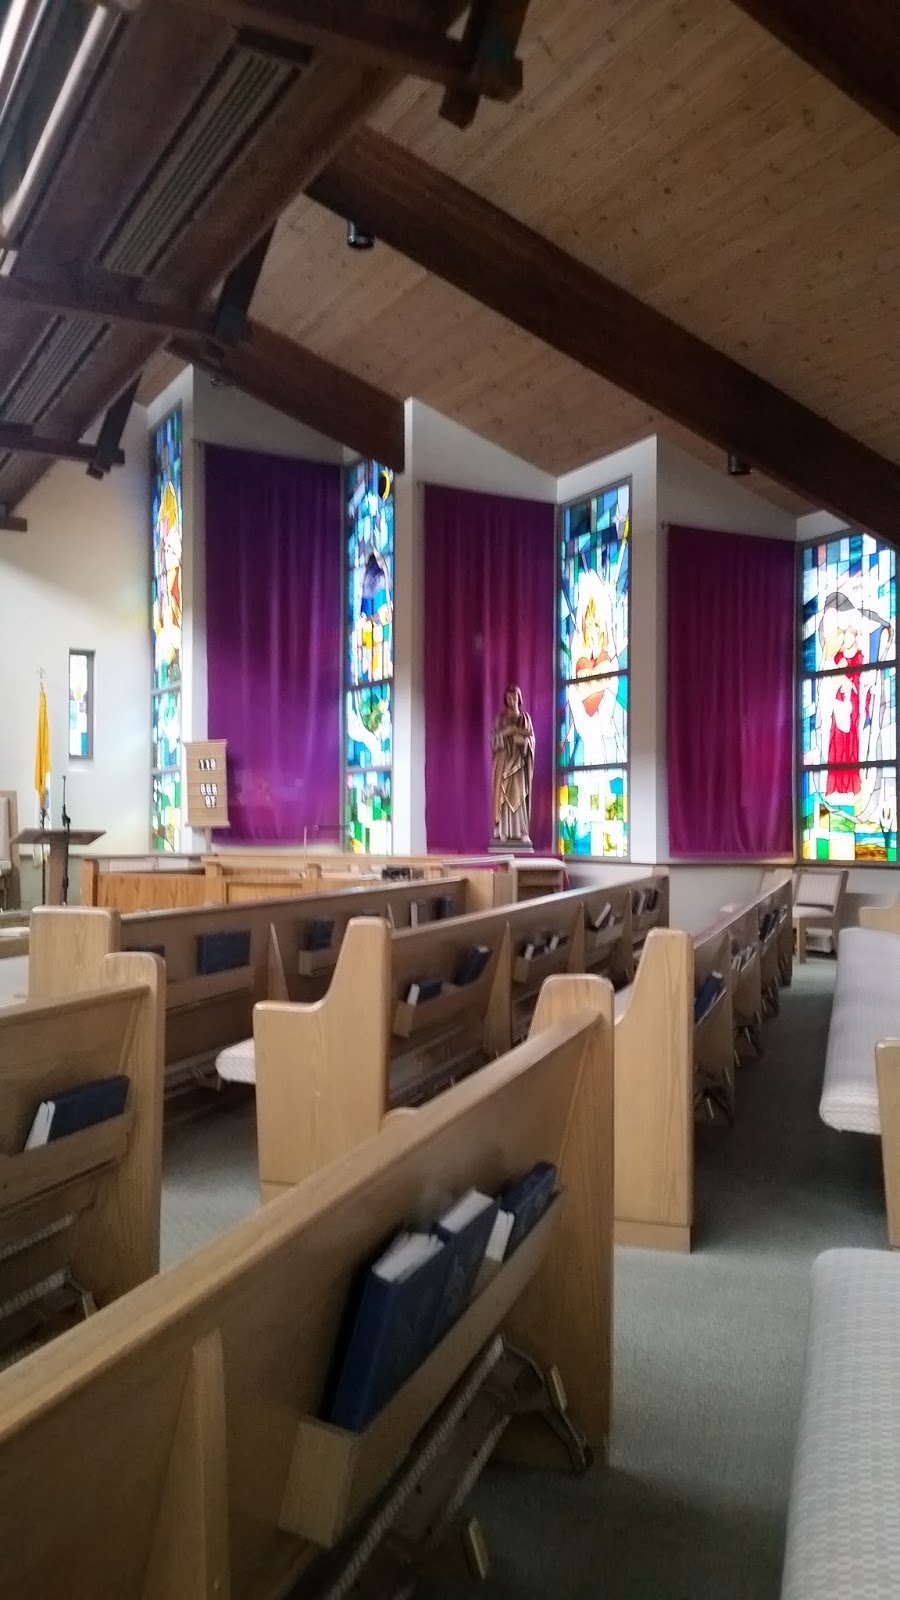 Our Lady of Victory - church  | Photo 4 of 10 | Address: 327 Cherry Lane Rd, Tannersville, PA 18372, USA | Phone: (570) 629-4572